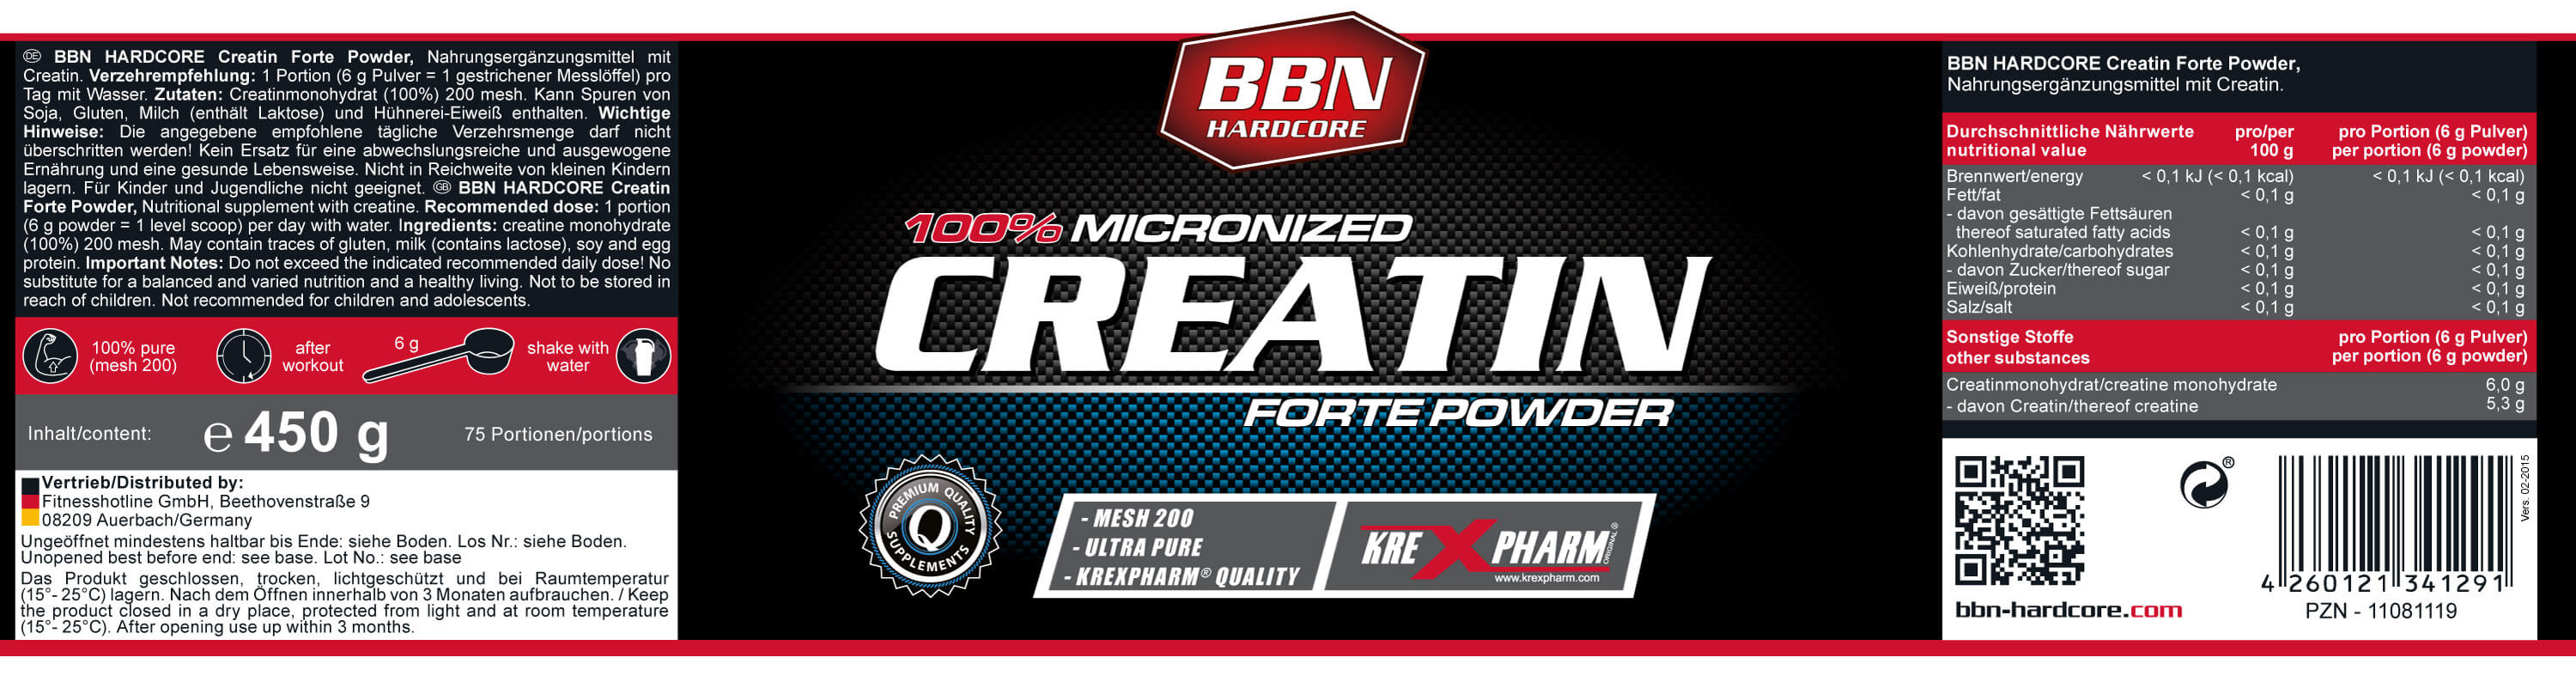 Best Body Nutrition Hardcore Creatin Forte Powder Etikett